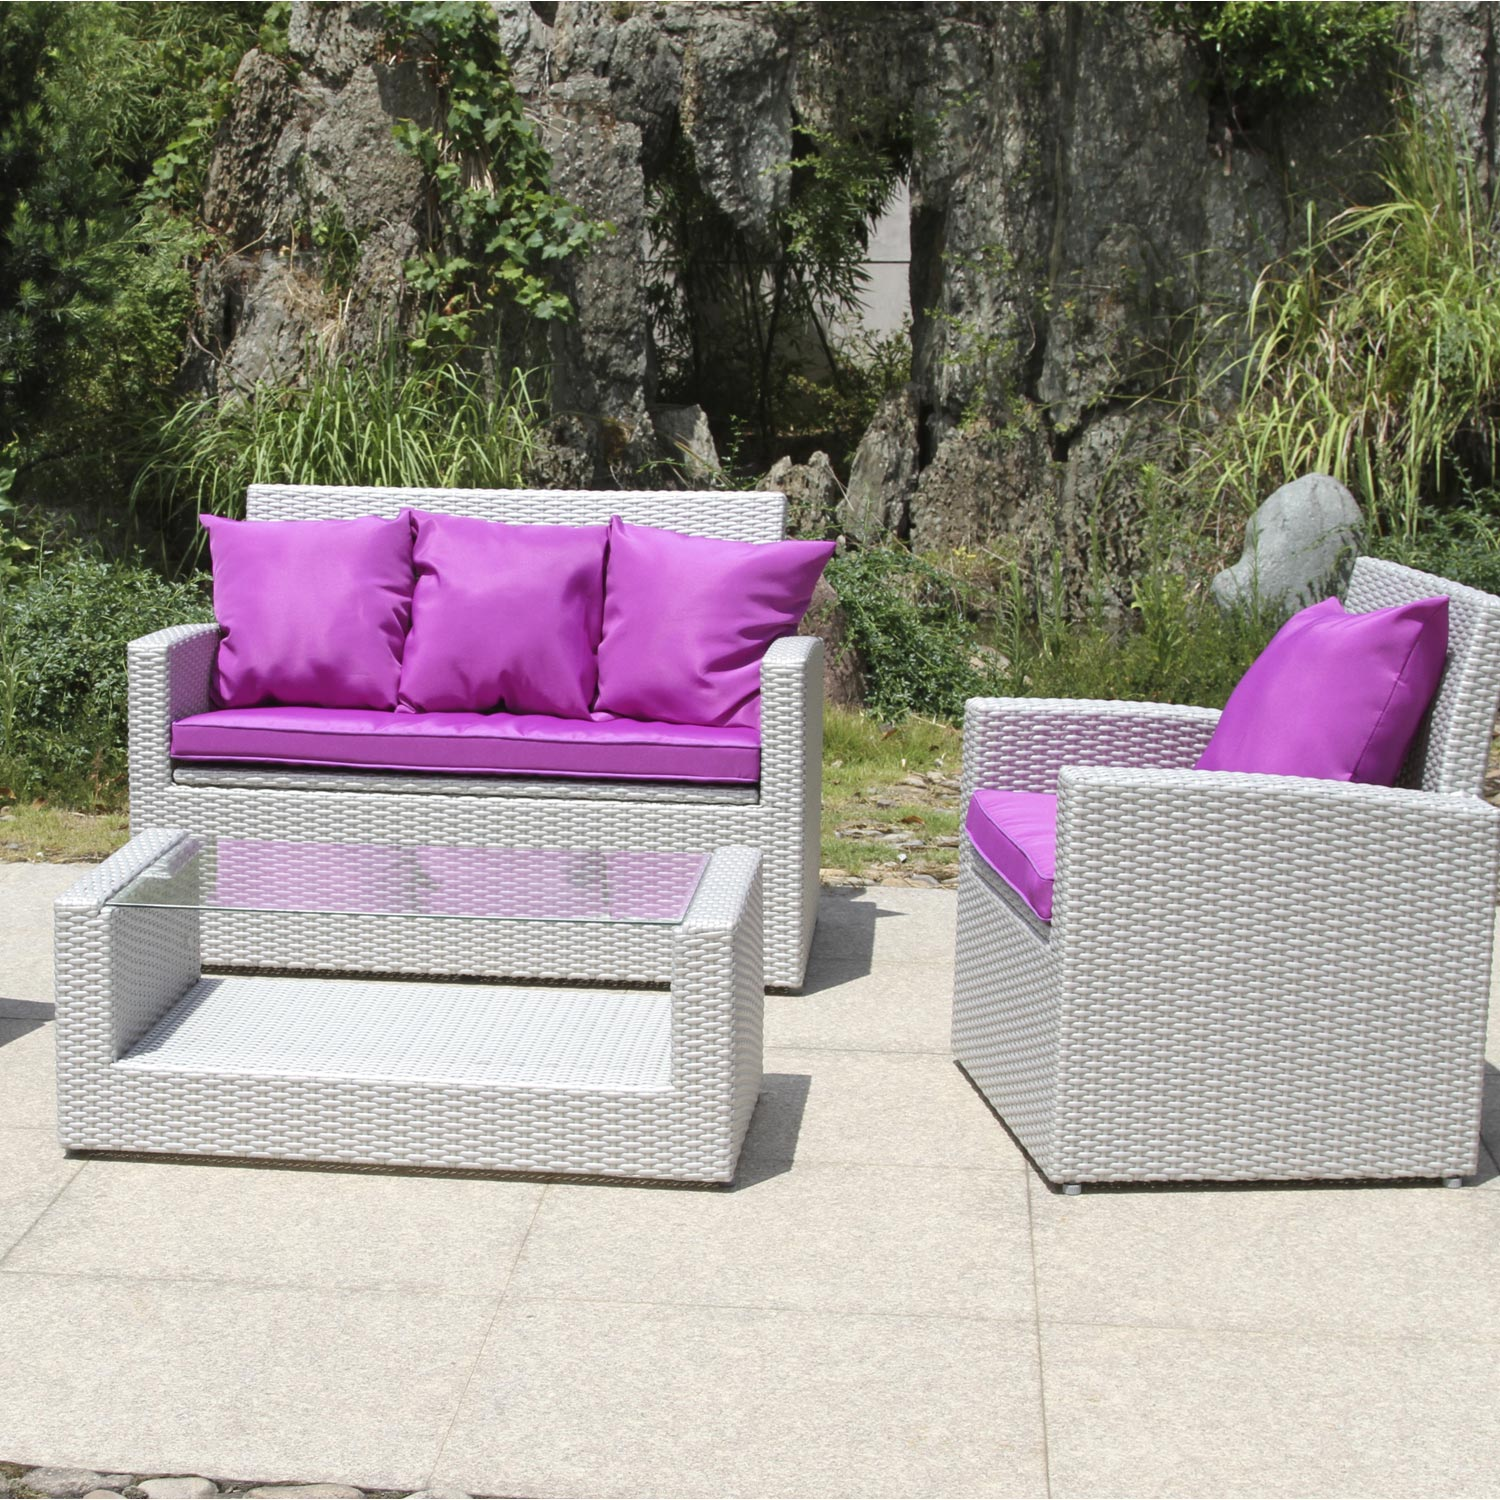 salon jardin mediterran e r sine plastique gris 1. Black Bedroom Furniture Sets. Home Design Ideas